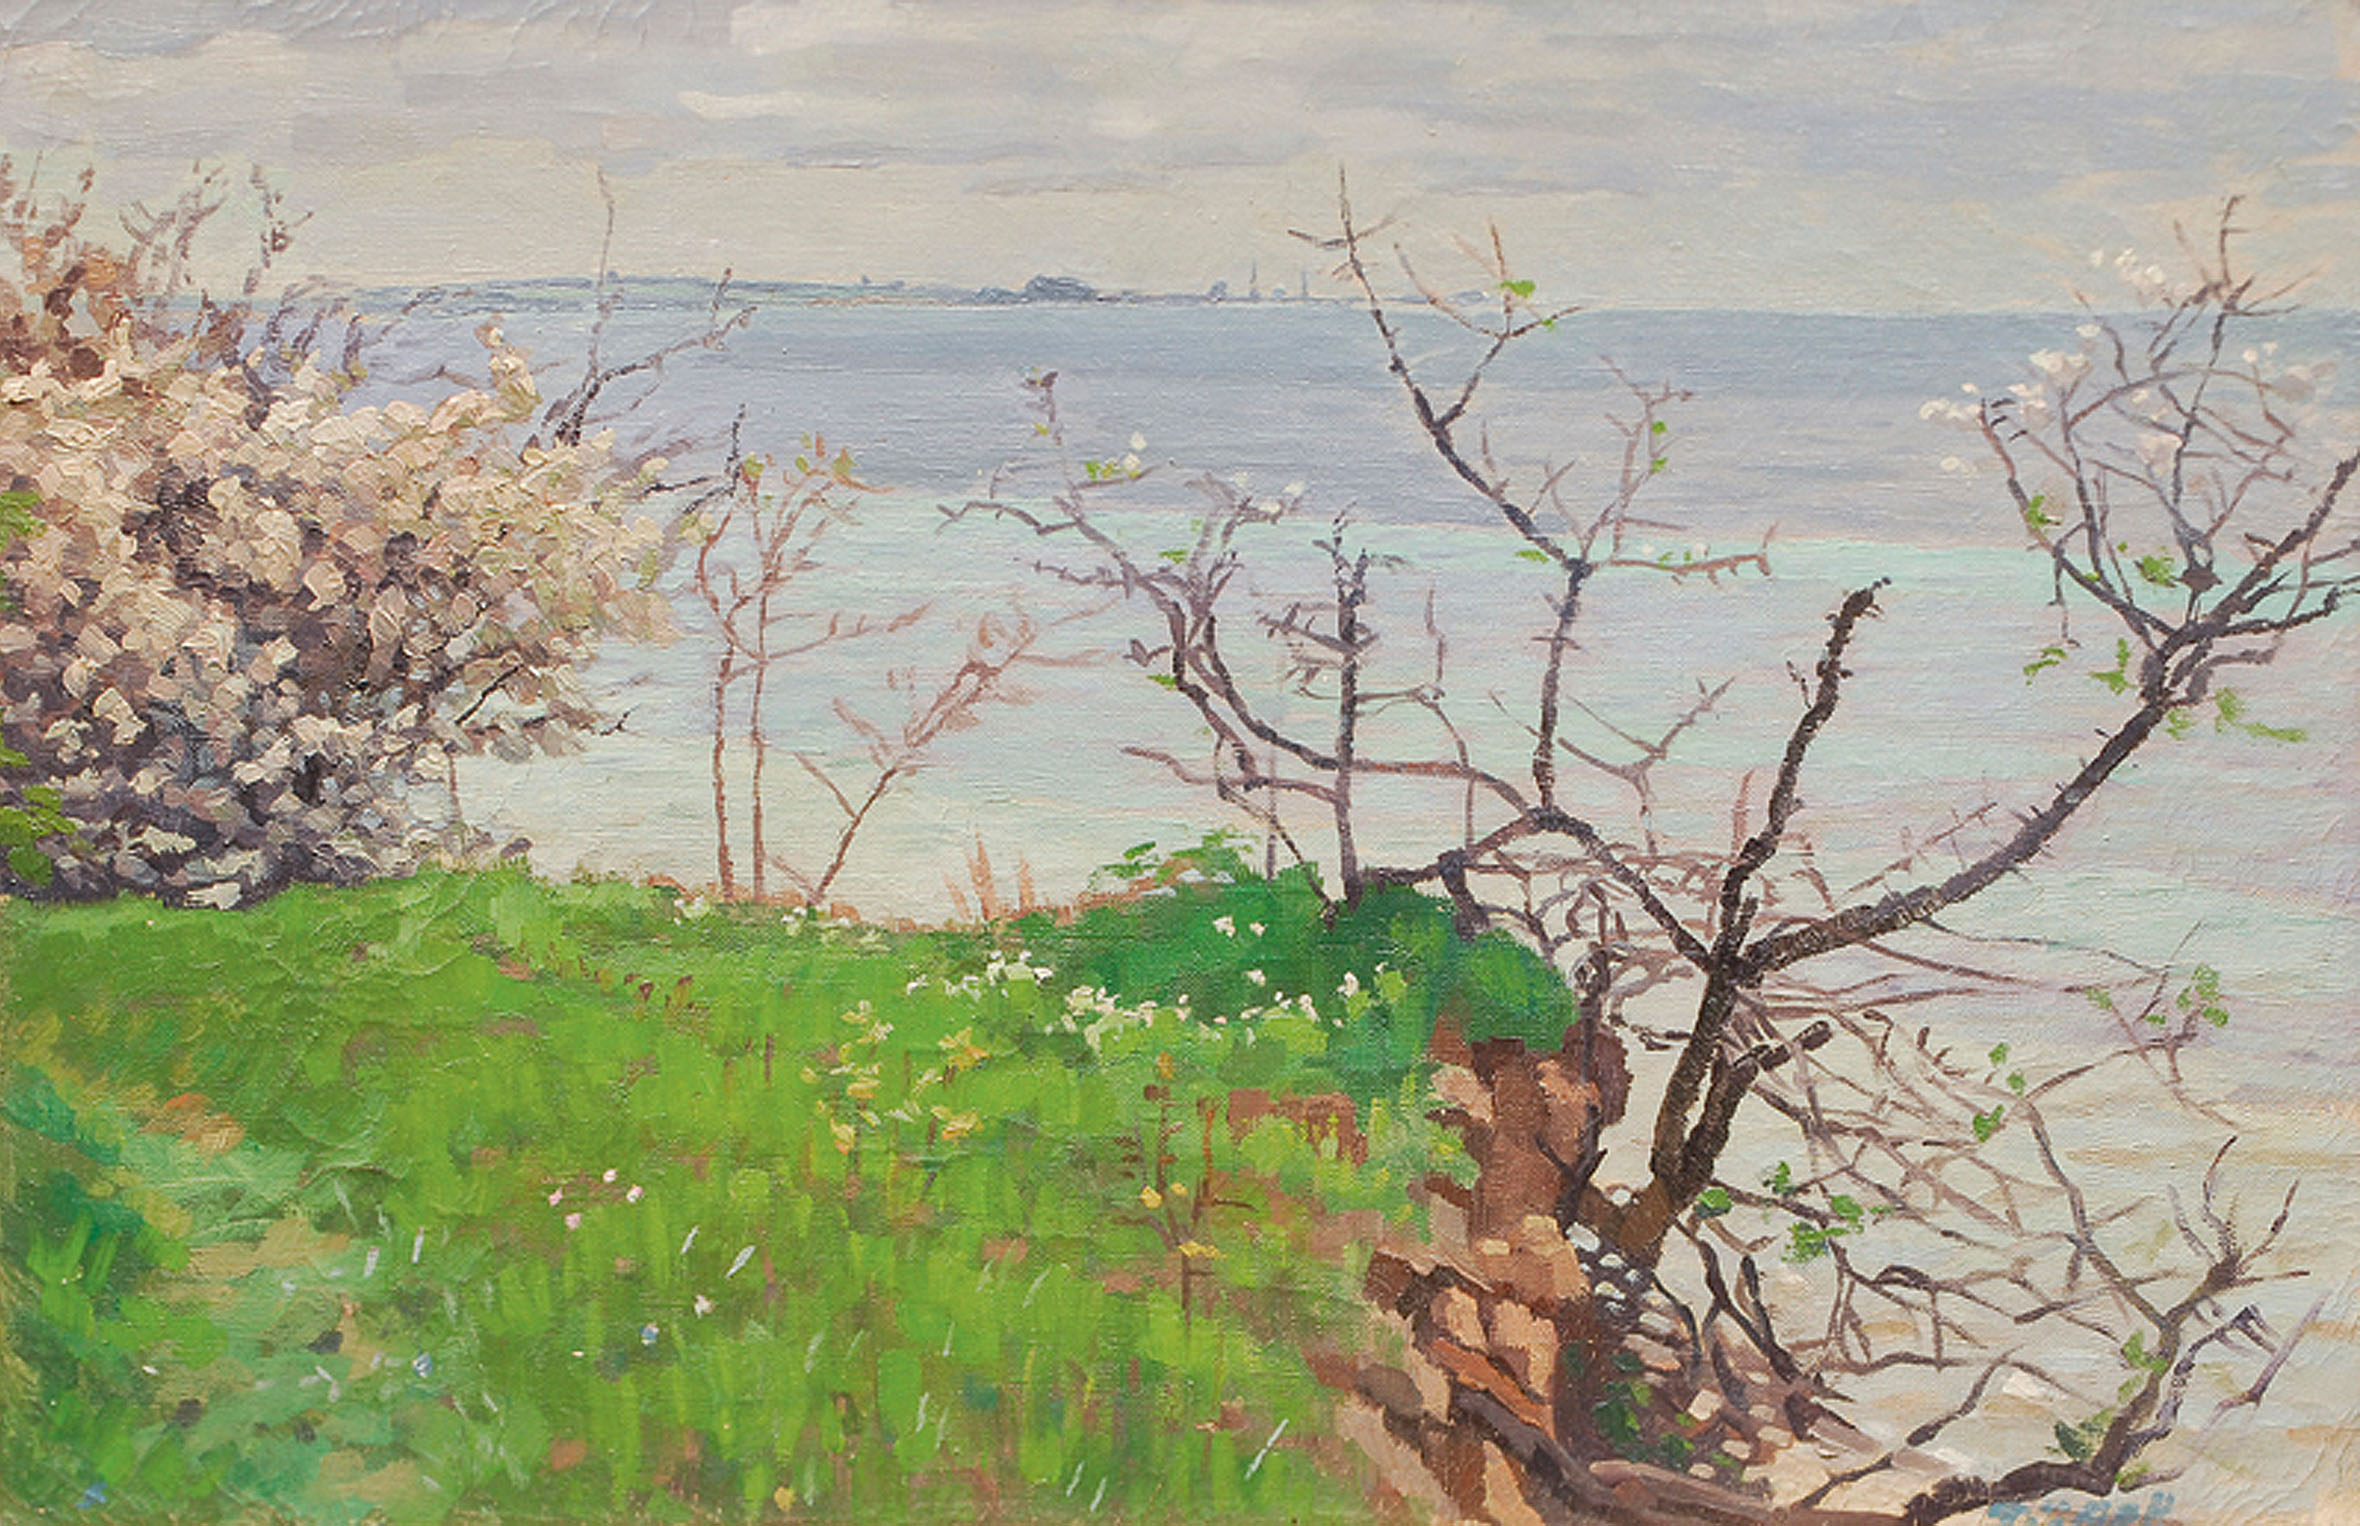 Blooming apple trees at the Baltic Sea